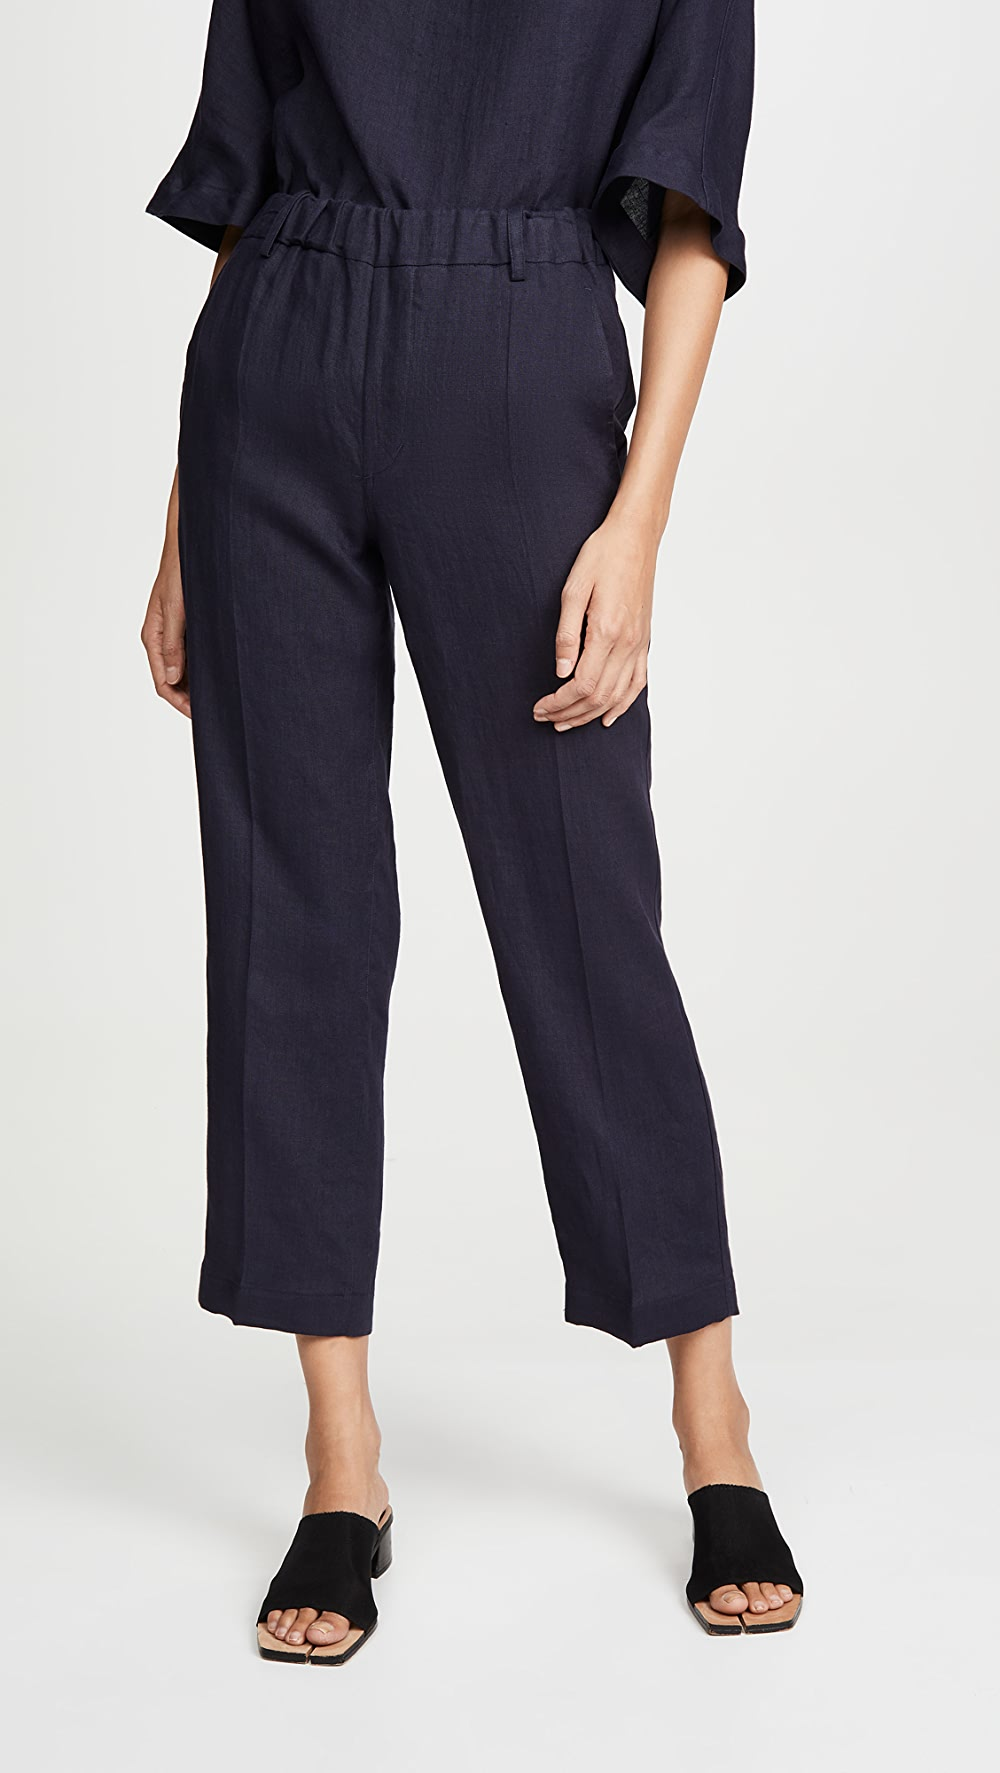 Search For Flights Mansur Gavriel - Linen Pull On Pants A Complete Range Of Specifications